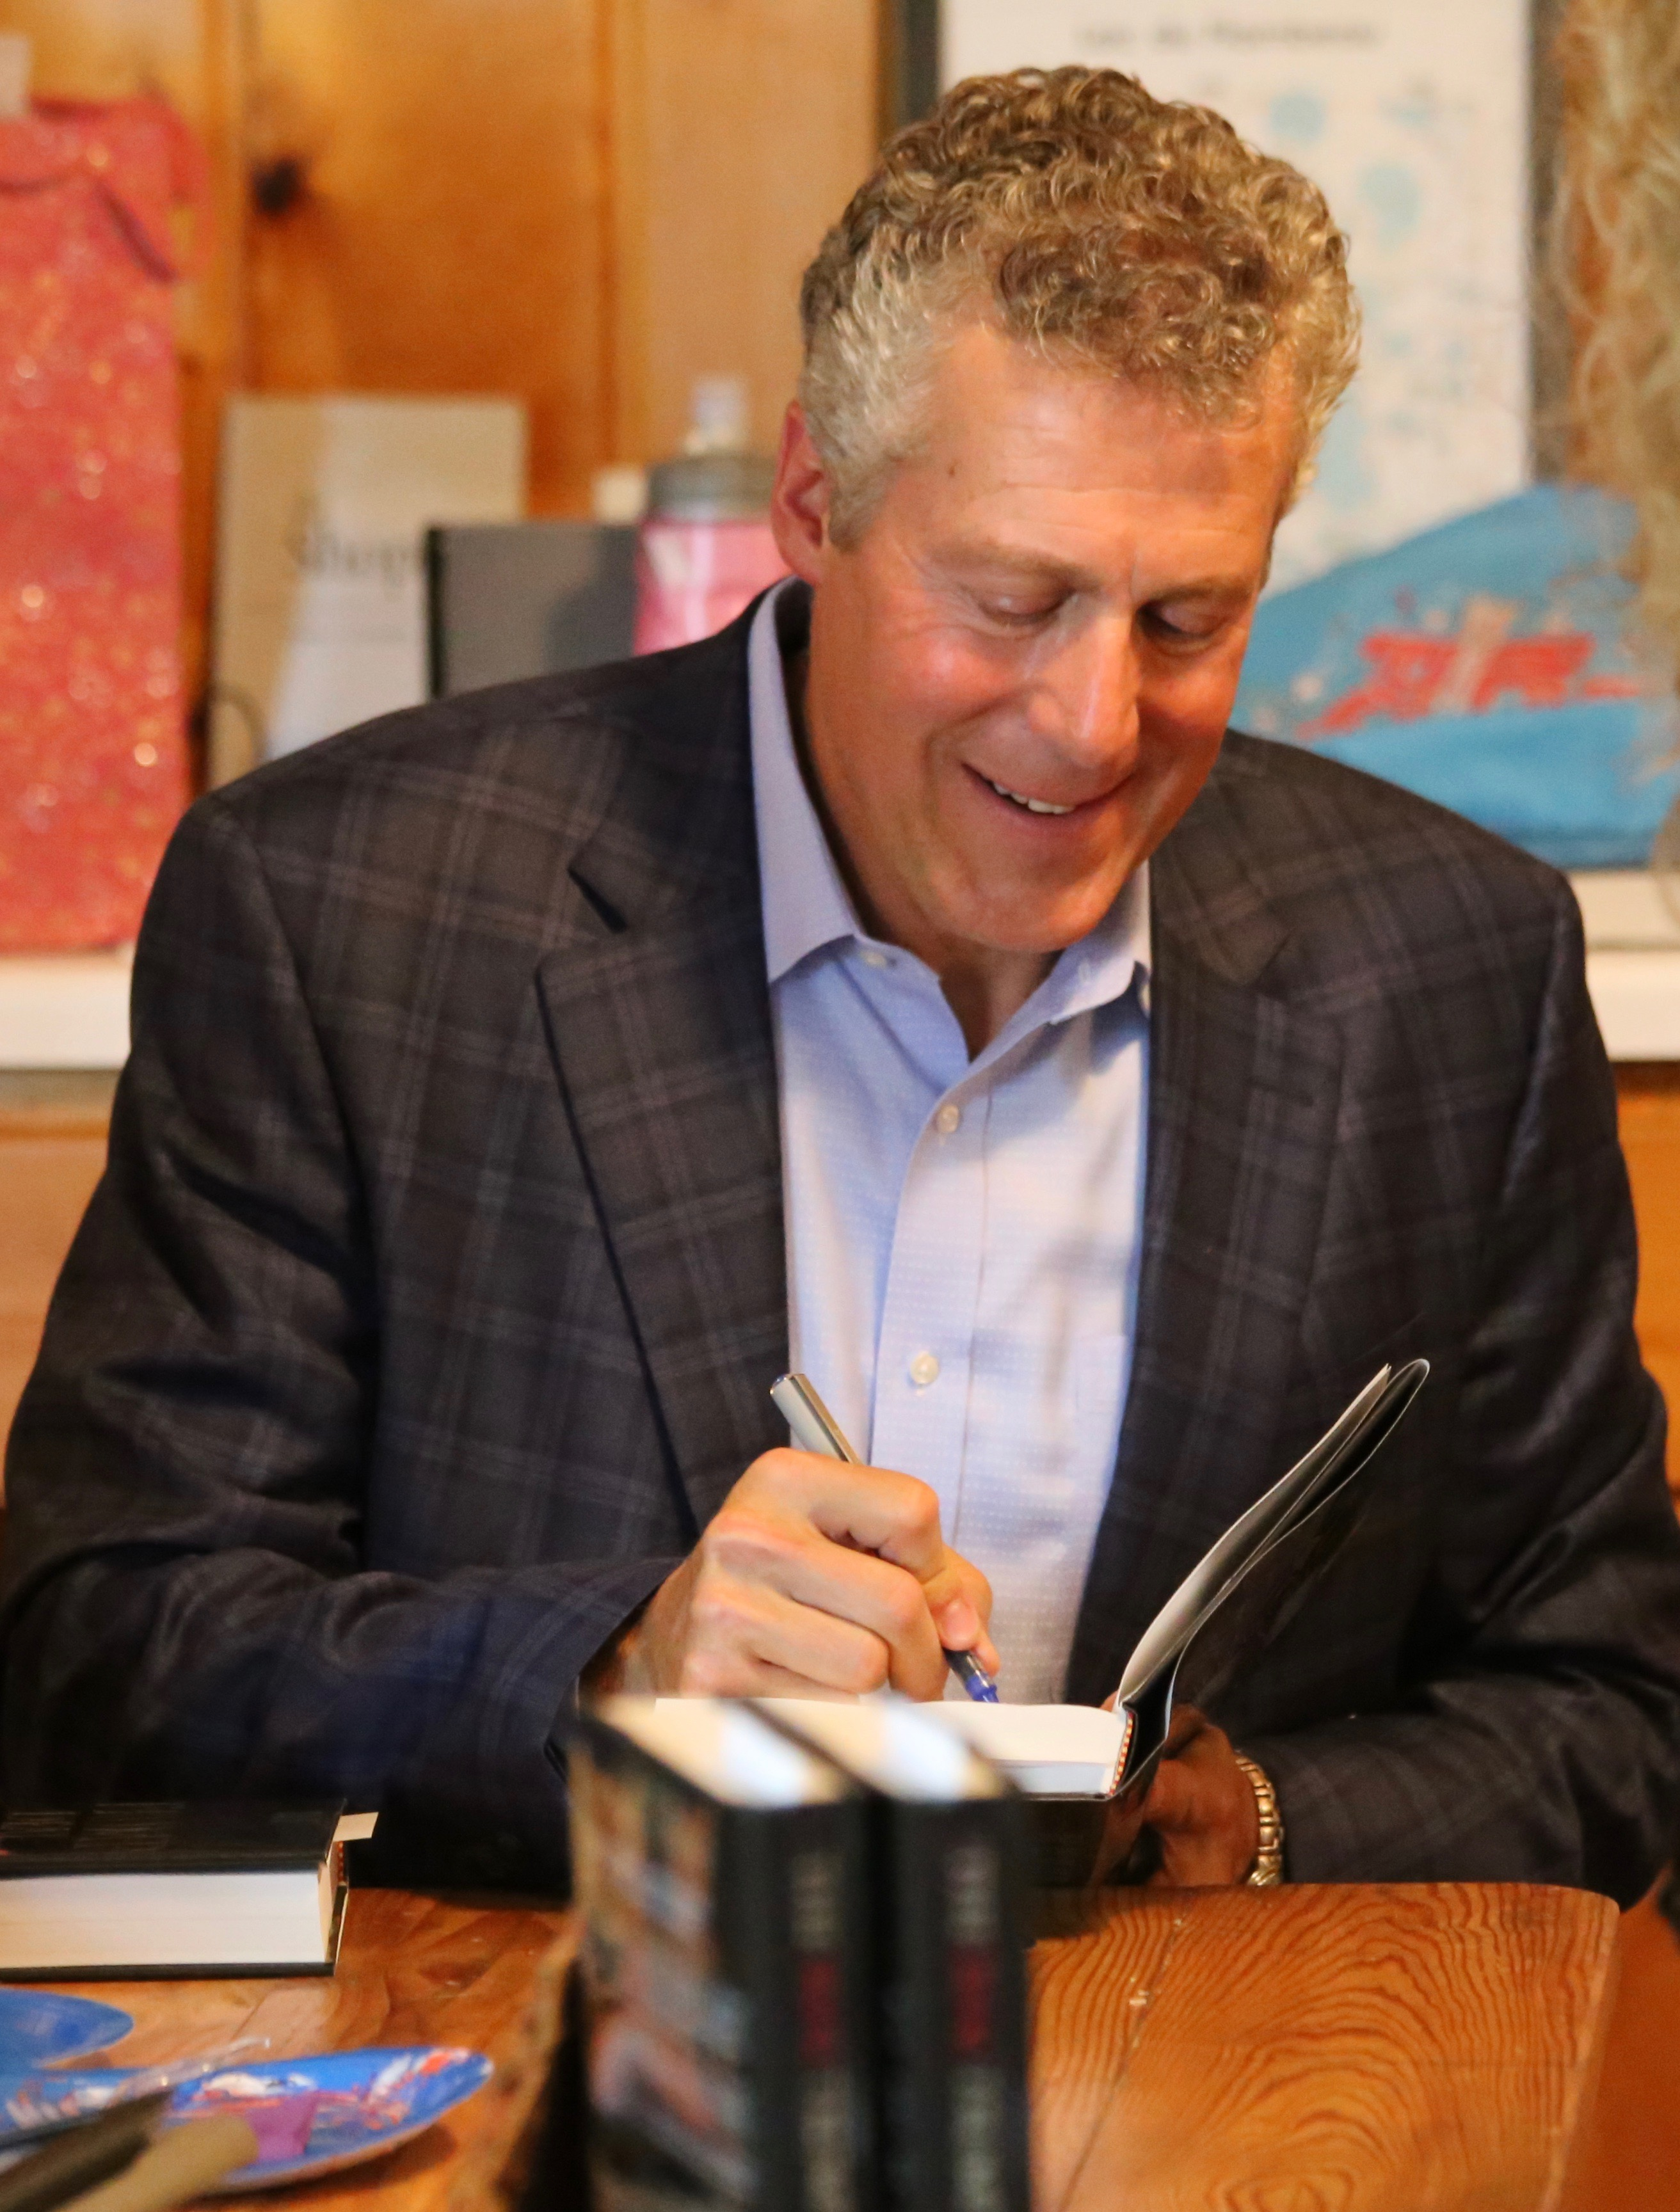 Marty Latz at a Book Signing